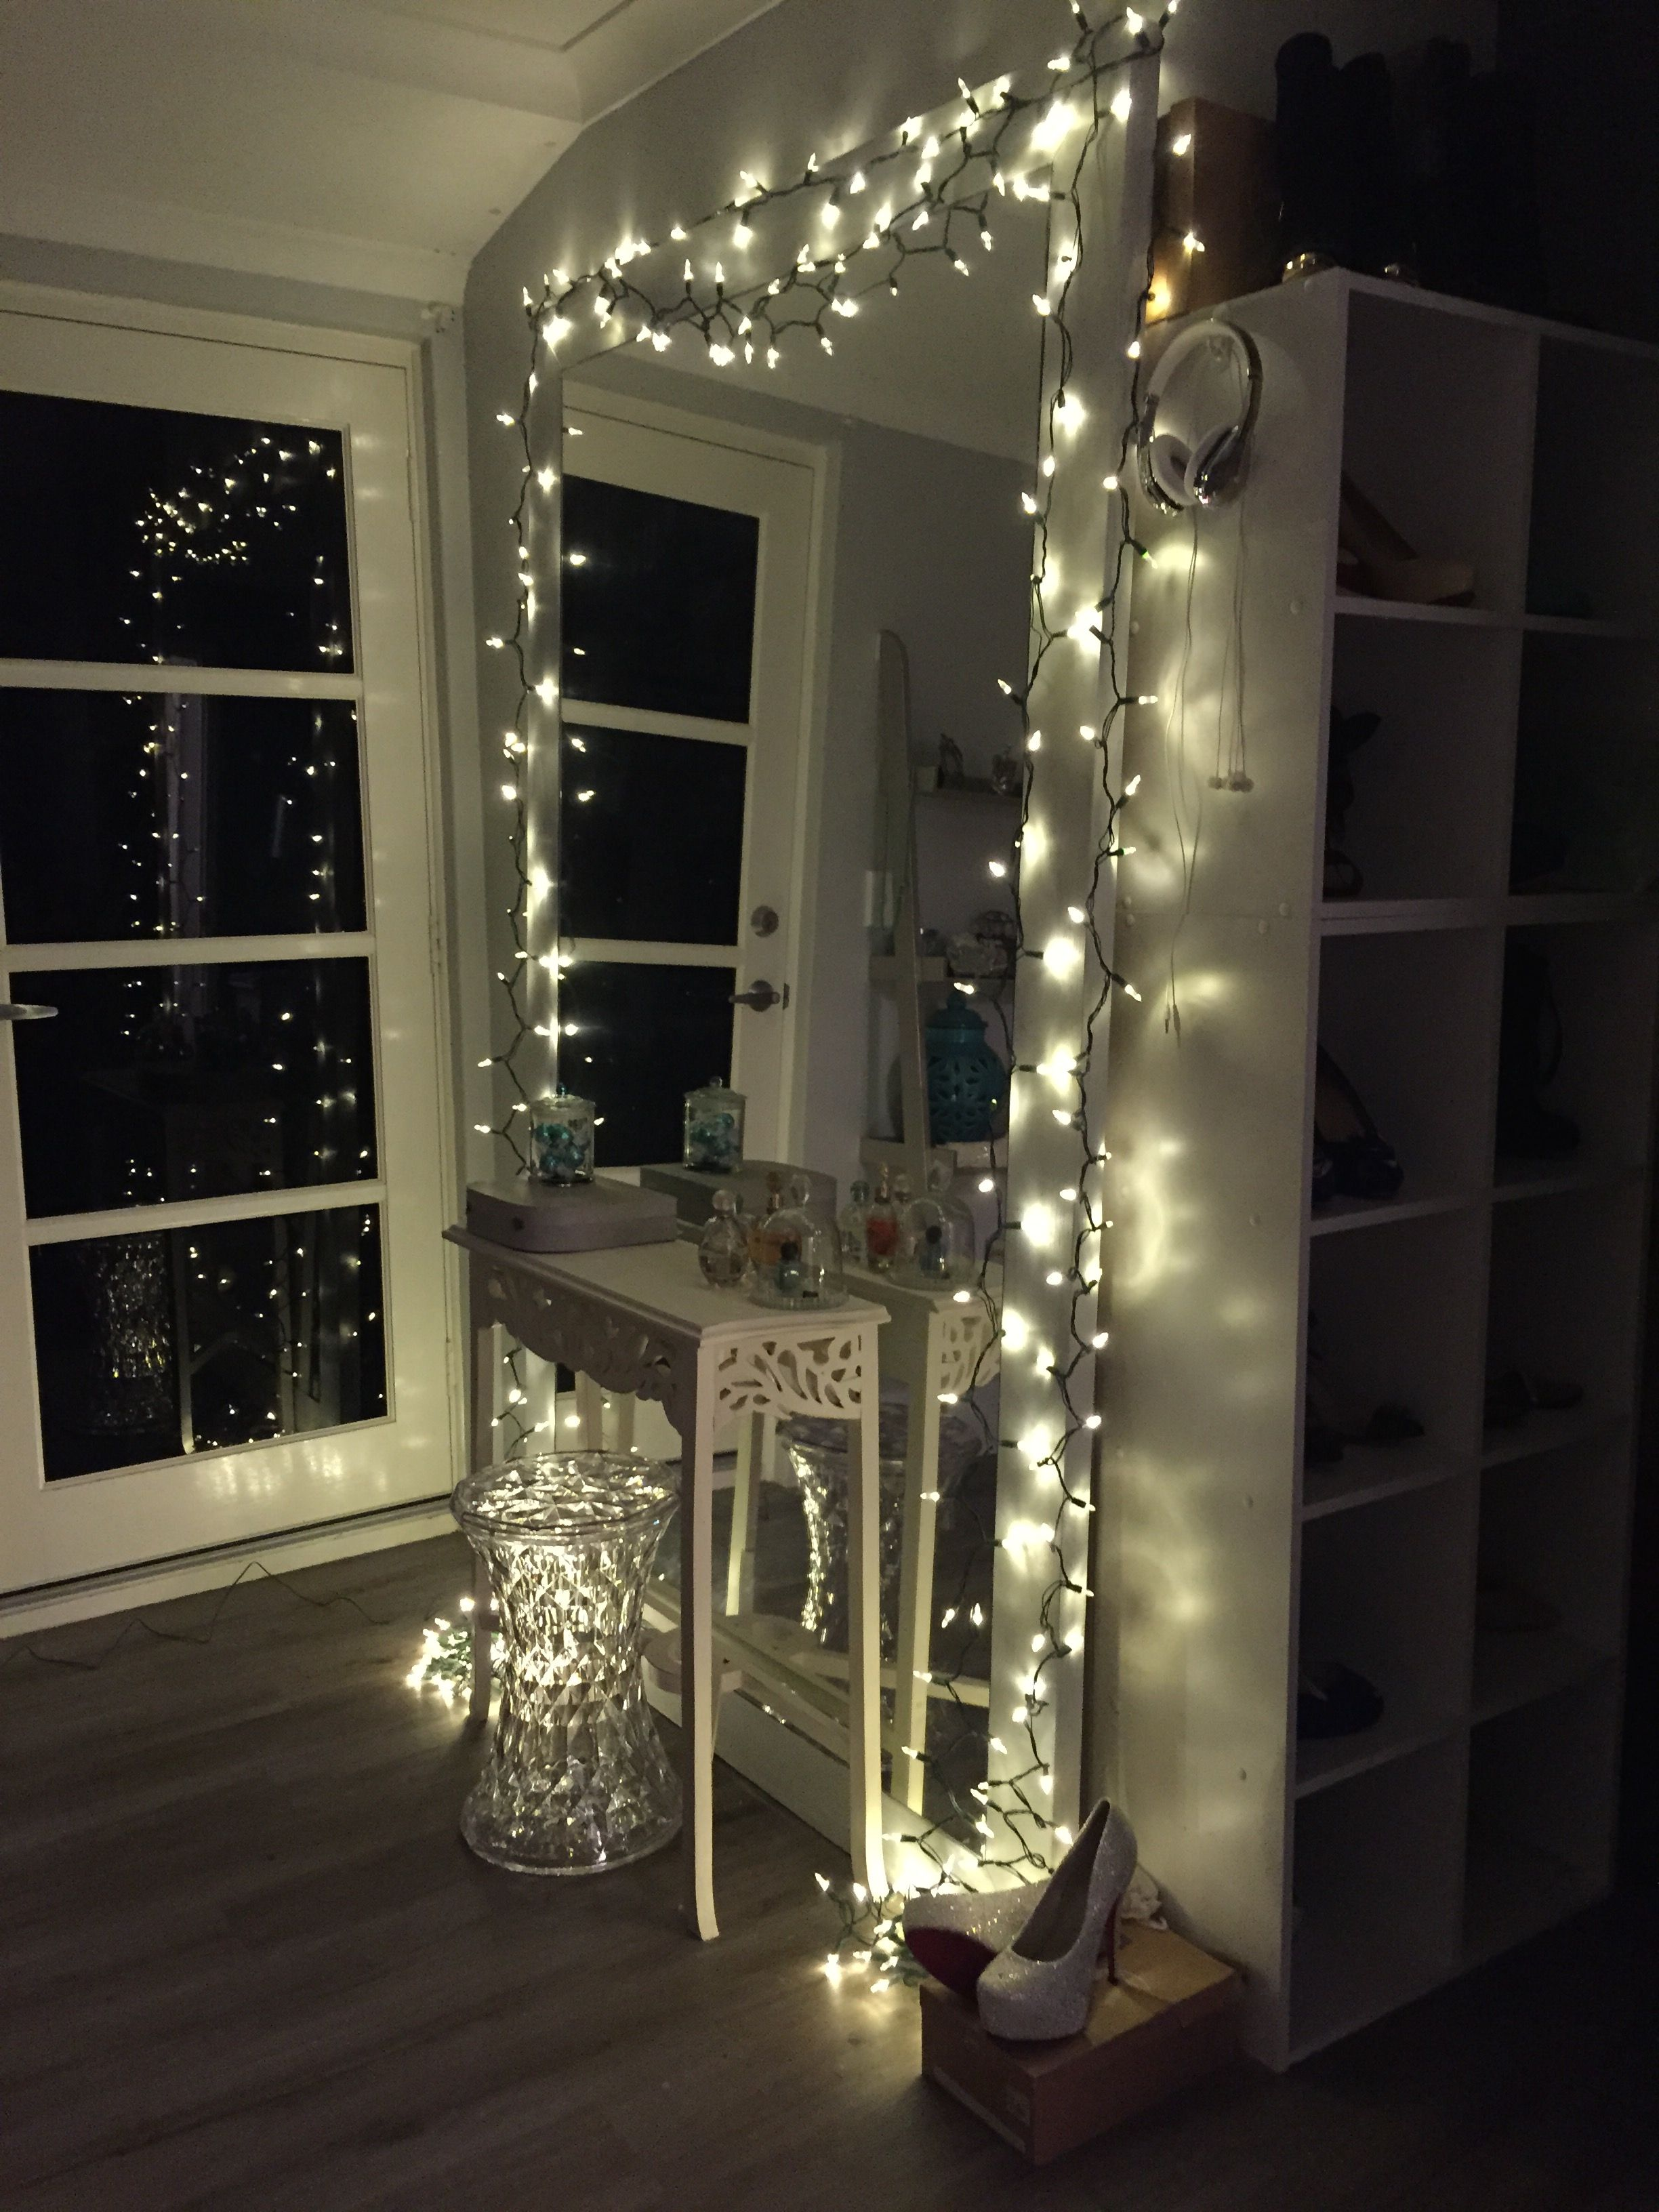 Dressing Table Mirror All Lit Up With Fairy Lights Mirror Decor Hipster Bedroom Decor Fairy Lights Bedroom